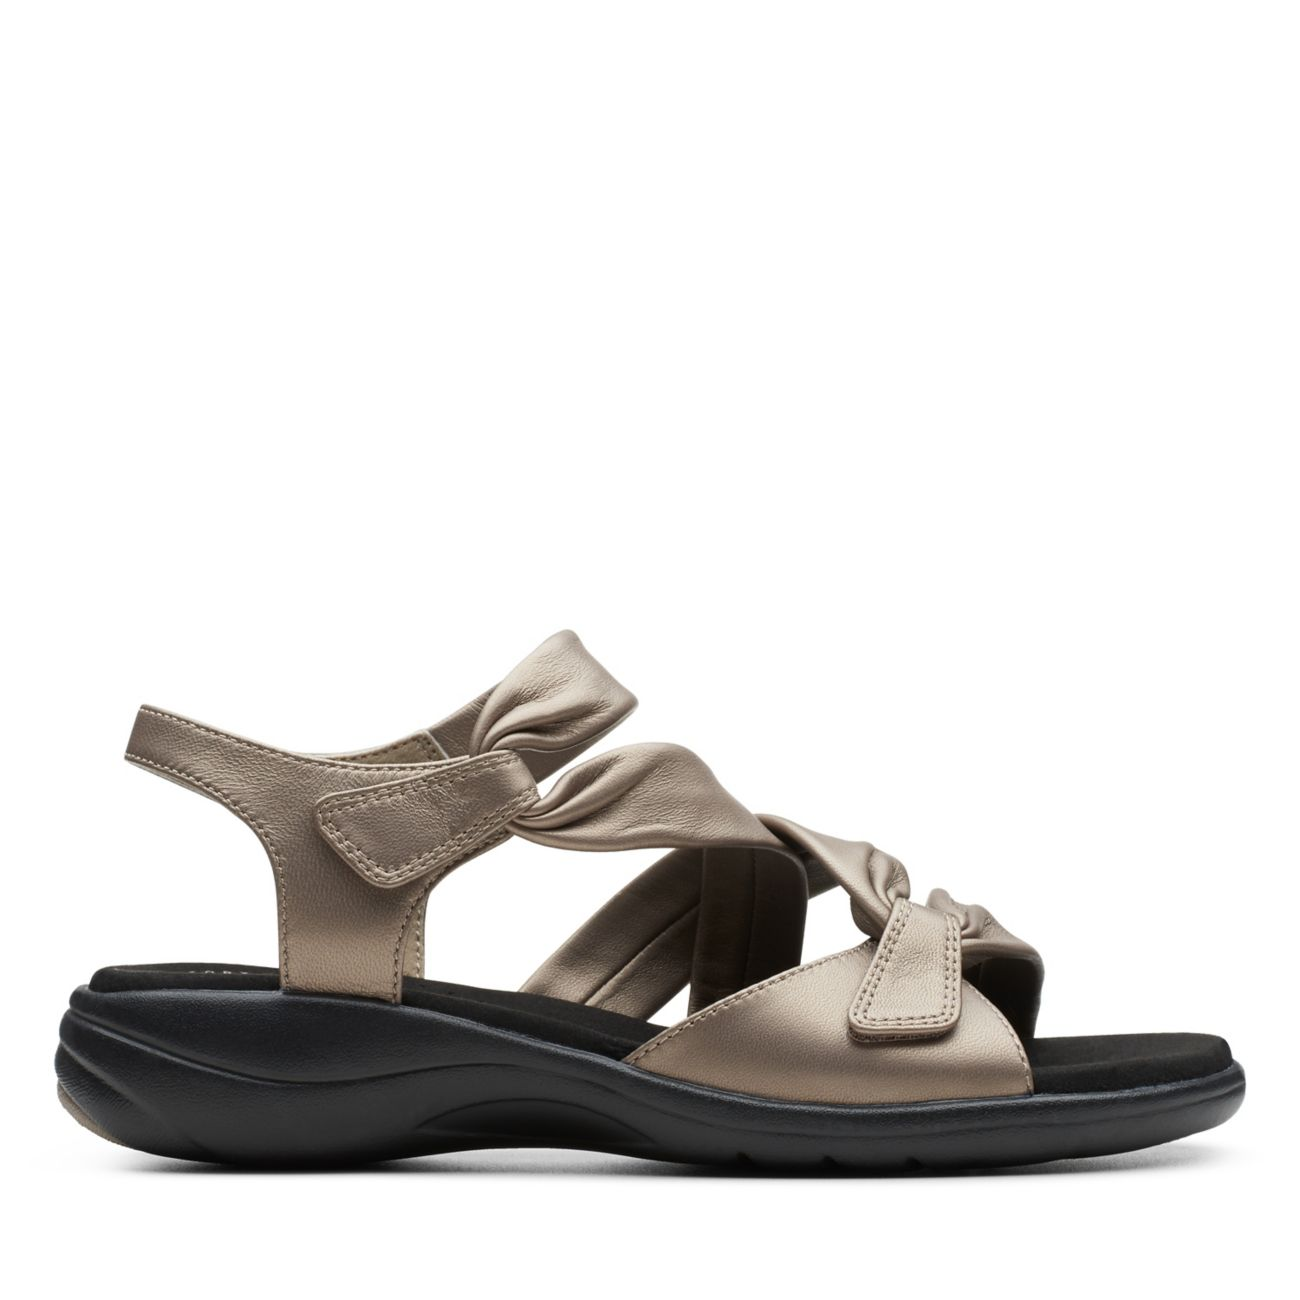 Saylie Moon Pewter Metallic Leather - Women's Sandals - Clarks® Shoes Official Site | Clarks